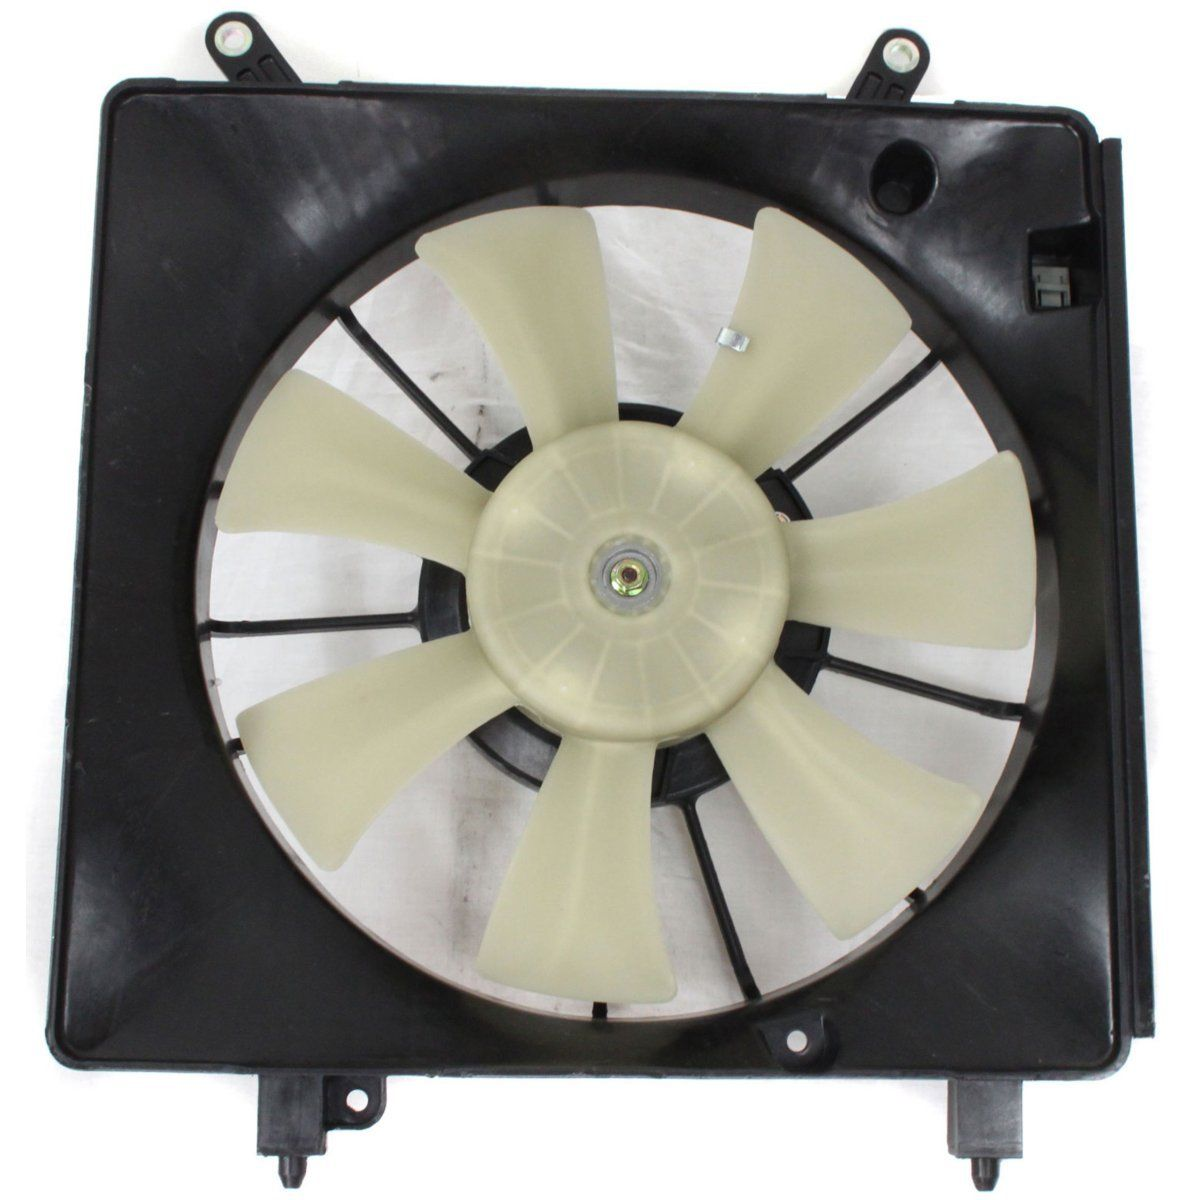 Radiator Cooling Fan For 2002-2006 Acura RSX For AT Models